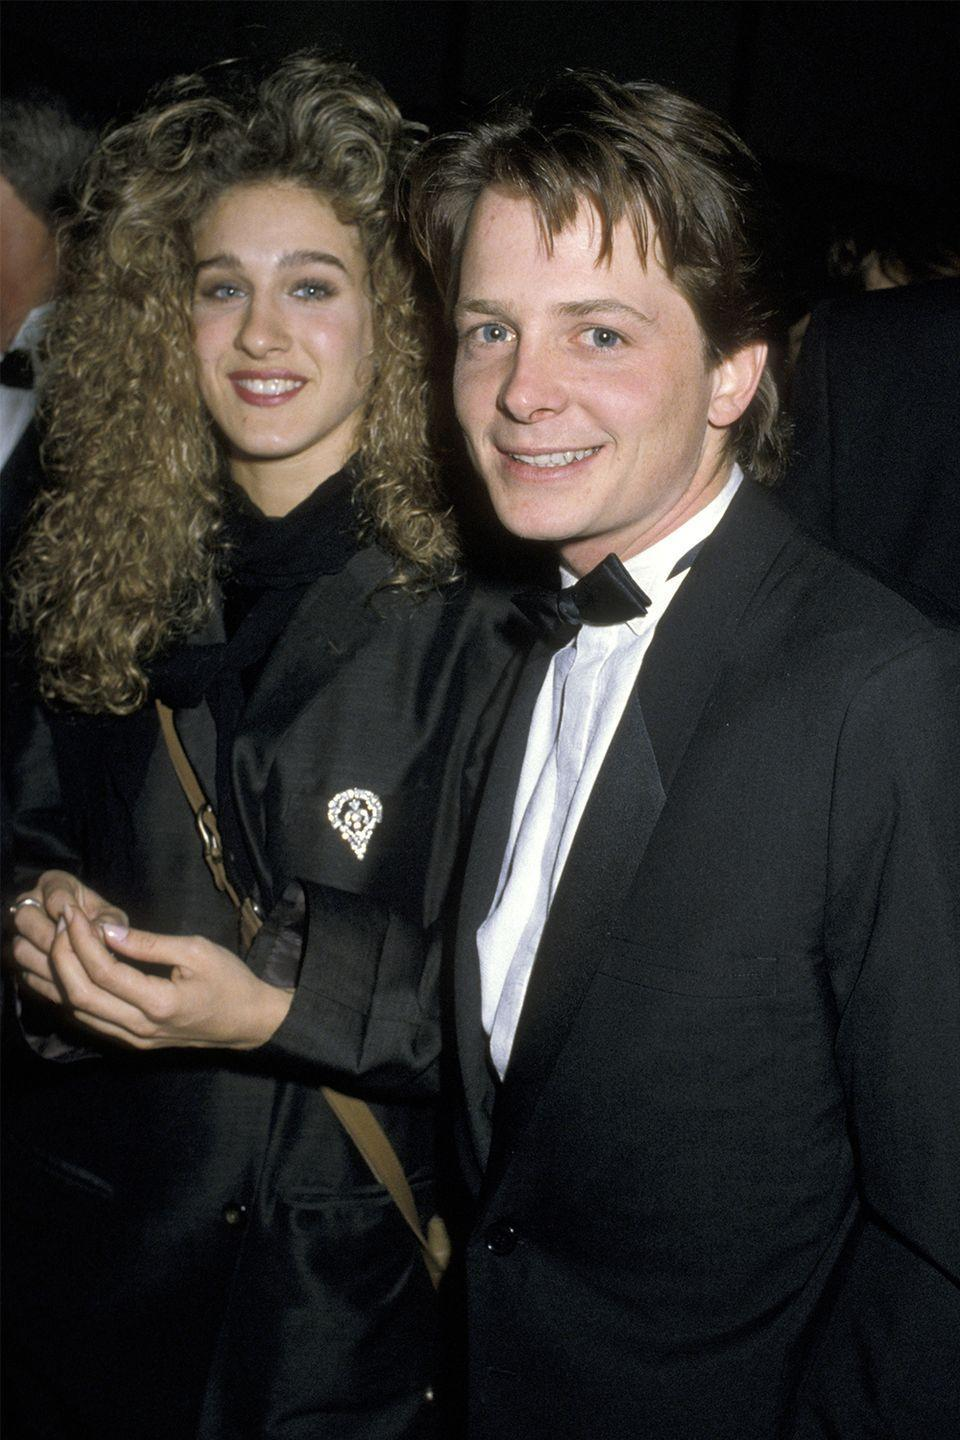 """<p>The <em>Back to the Future </em>star and the <em>Sex and the City</em> star used to be an item in the 1980s. The relationship reportedly lasted a year, but despite their many photos together, there was speculation that the couple was <a href=""""http://www.ninjajournalist.com/entertainment/michael-j-fox/"""" rel=""""nofollow noopener"""" target=""""_blank"""" data-ylk=""""slk:together as a PR stunt"""" class=""""link rapid-noclick-resp"""">together as a PR stunt</a>. </p>"""